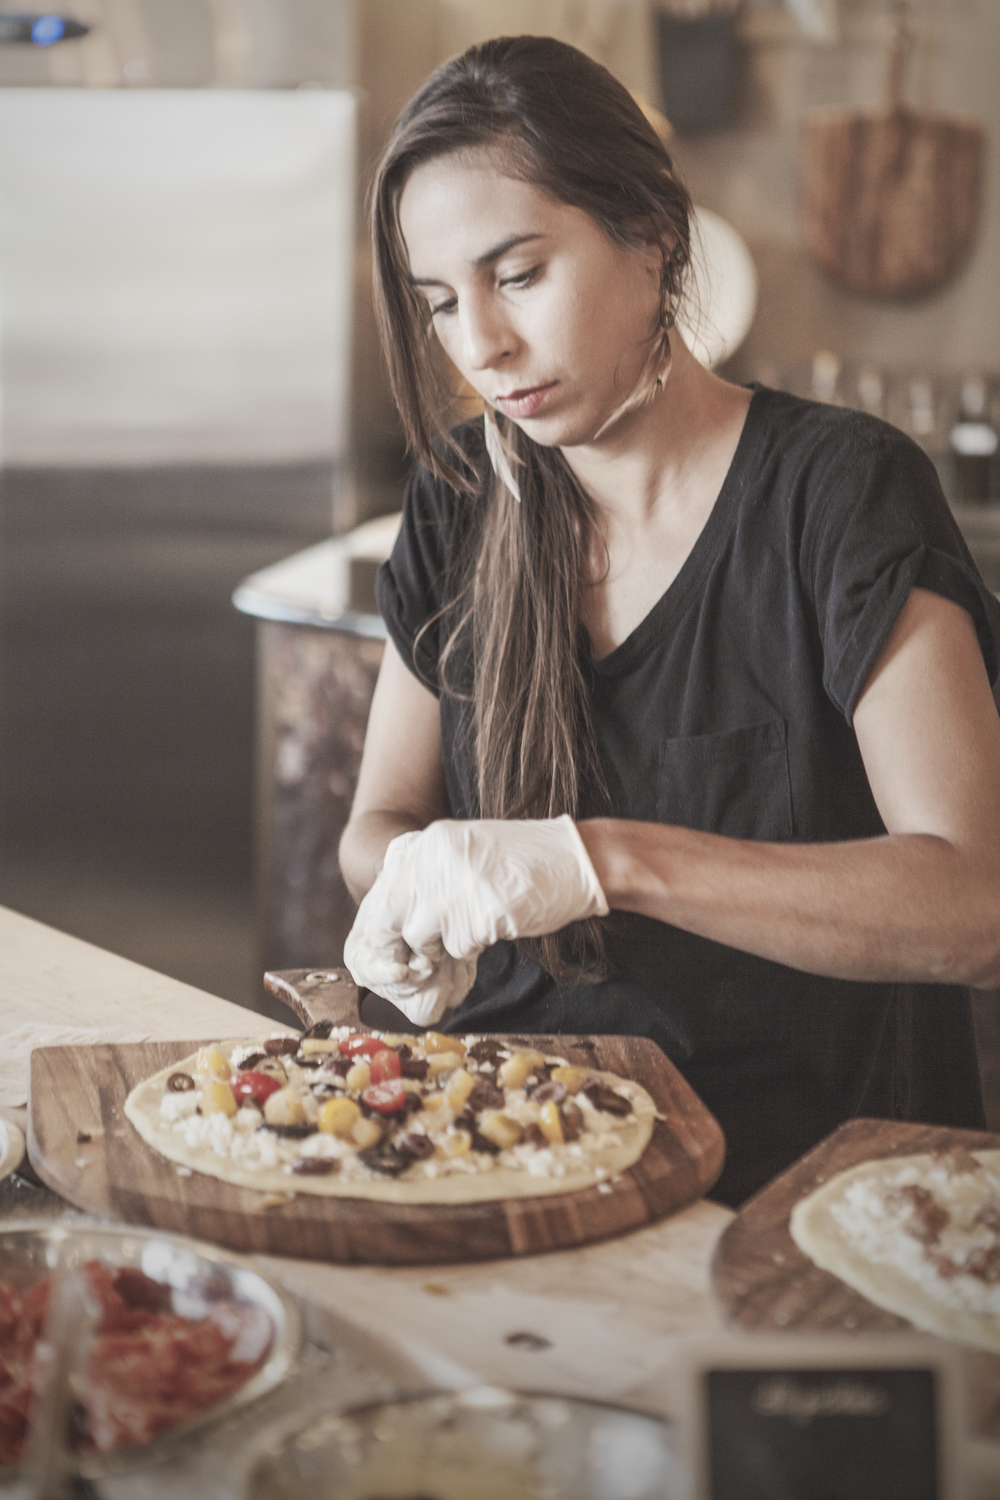 You can choose up to four ingredients to put on your pie or choose from one of the pre-designed pizzas.